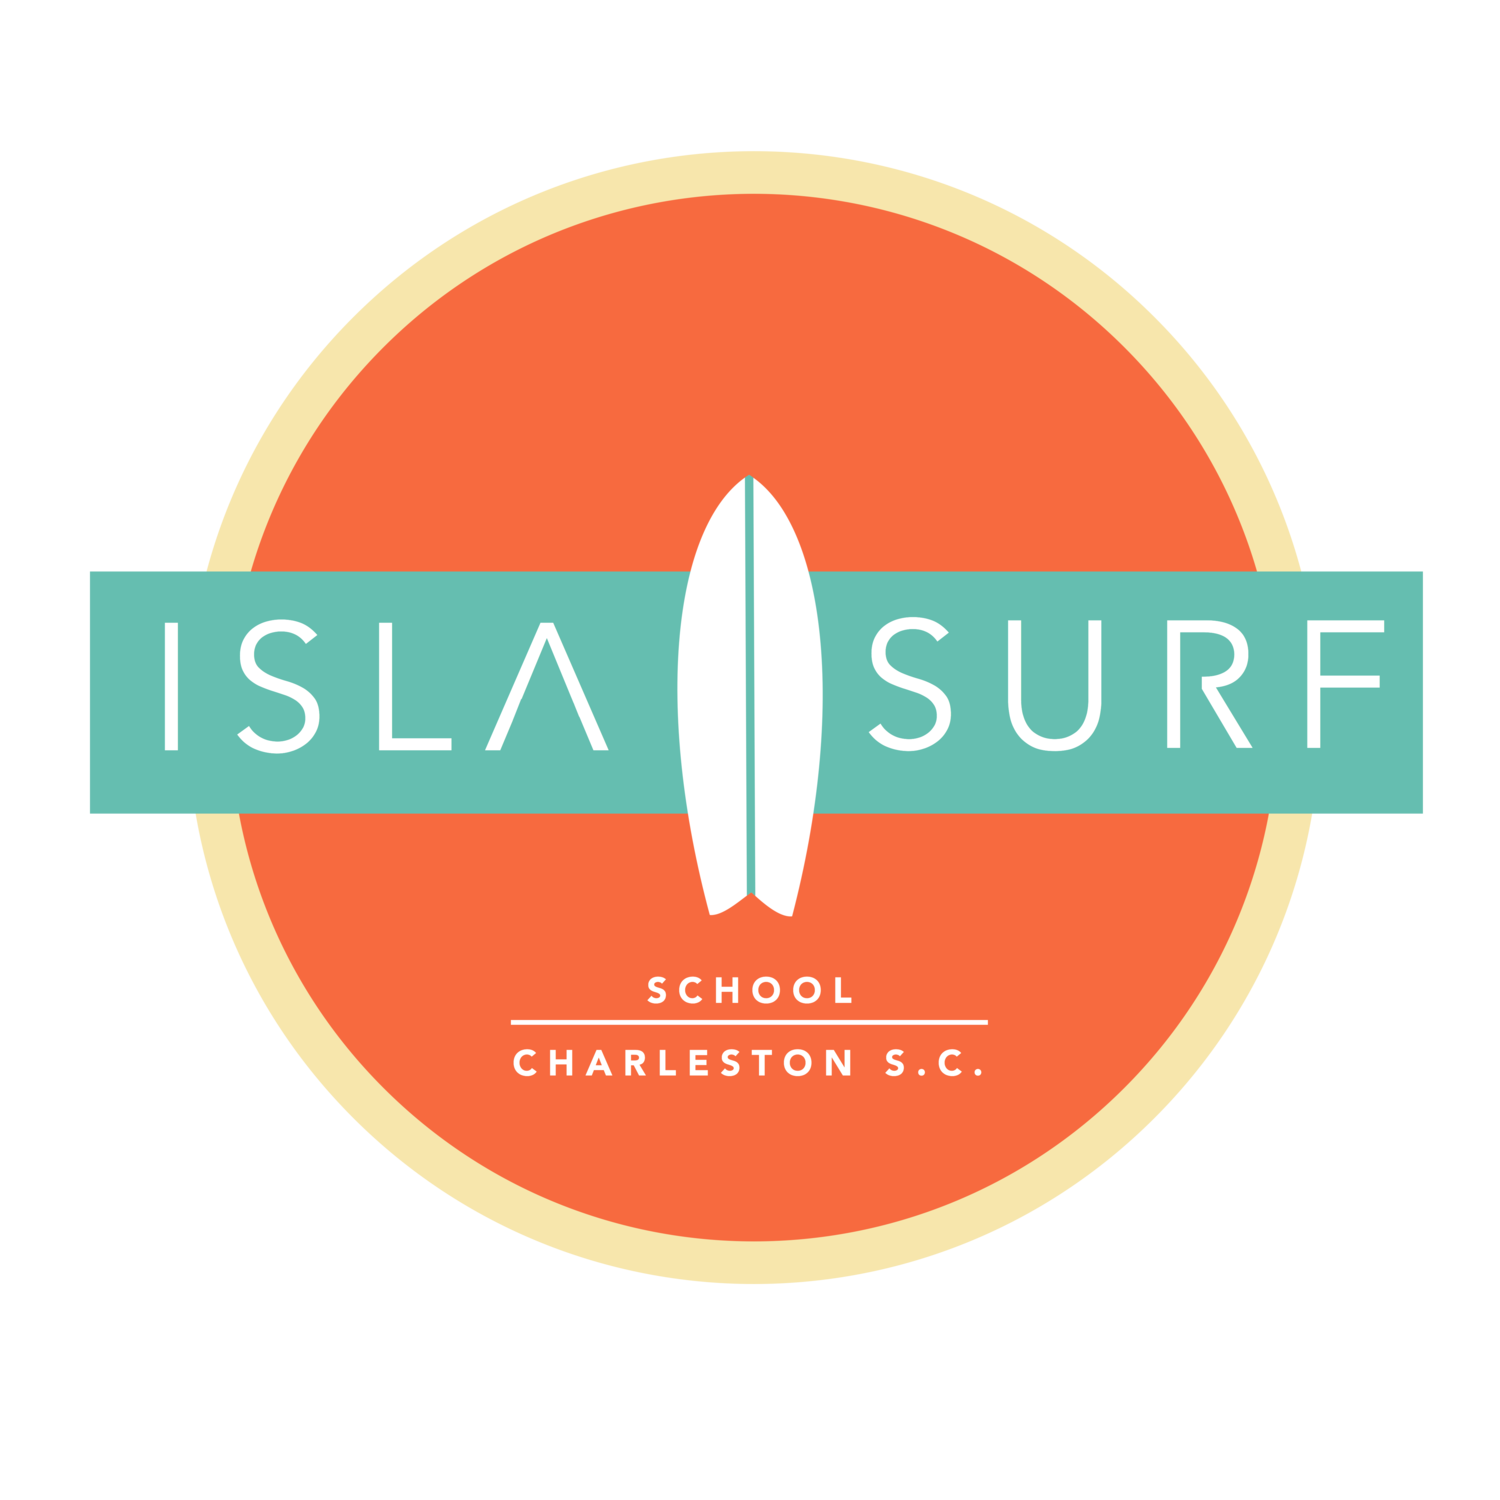 Isla Surf School